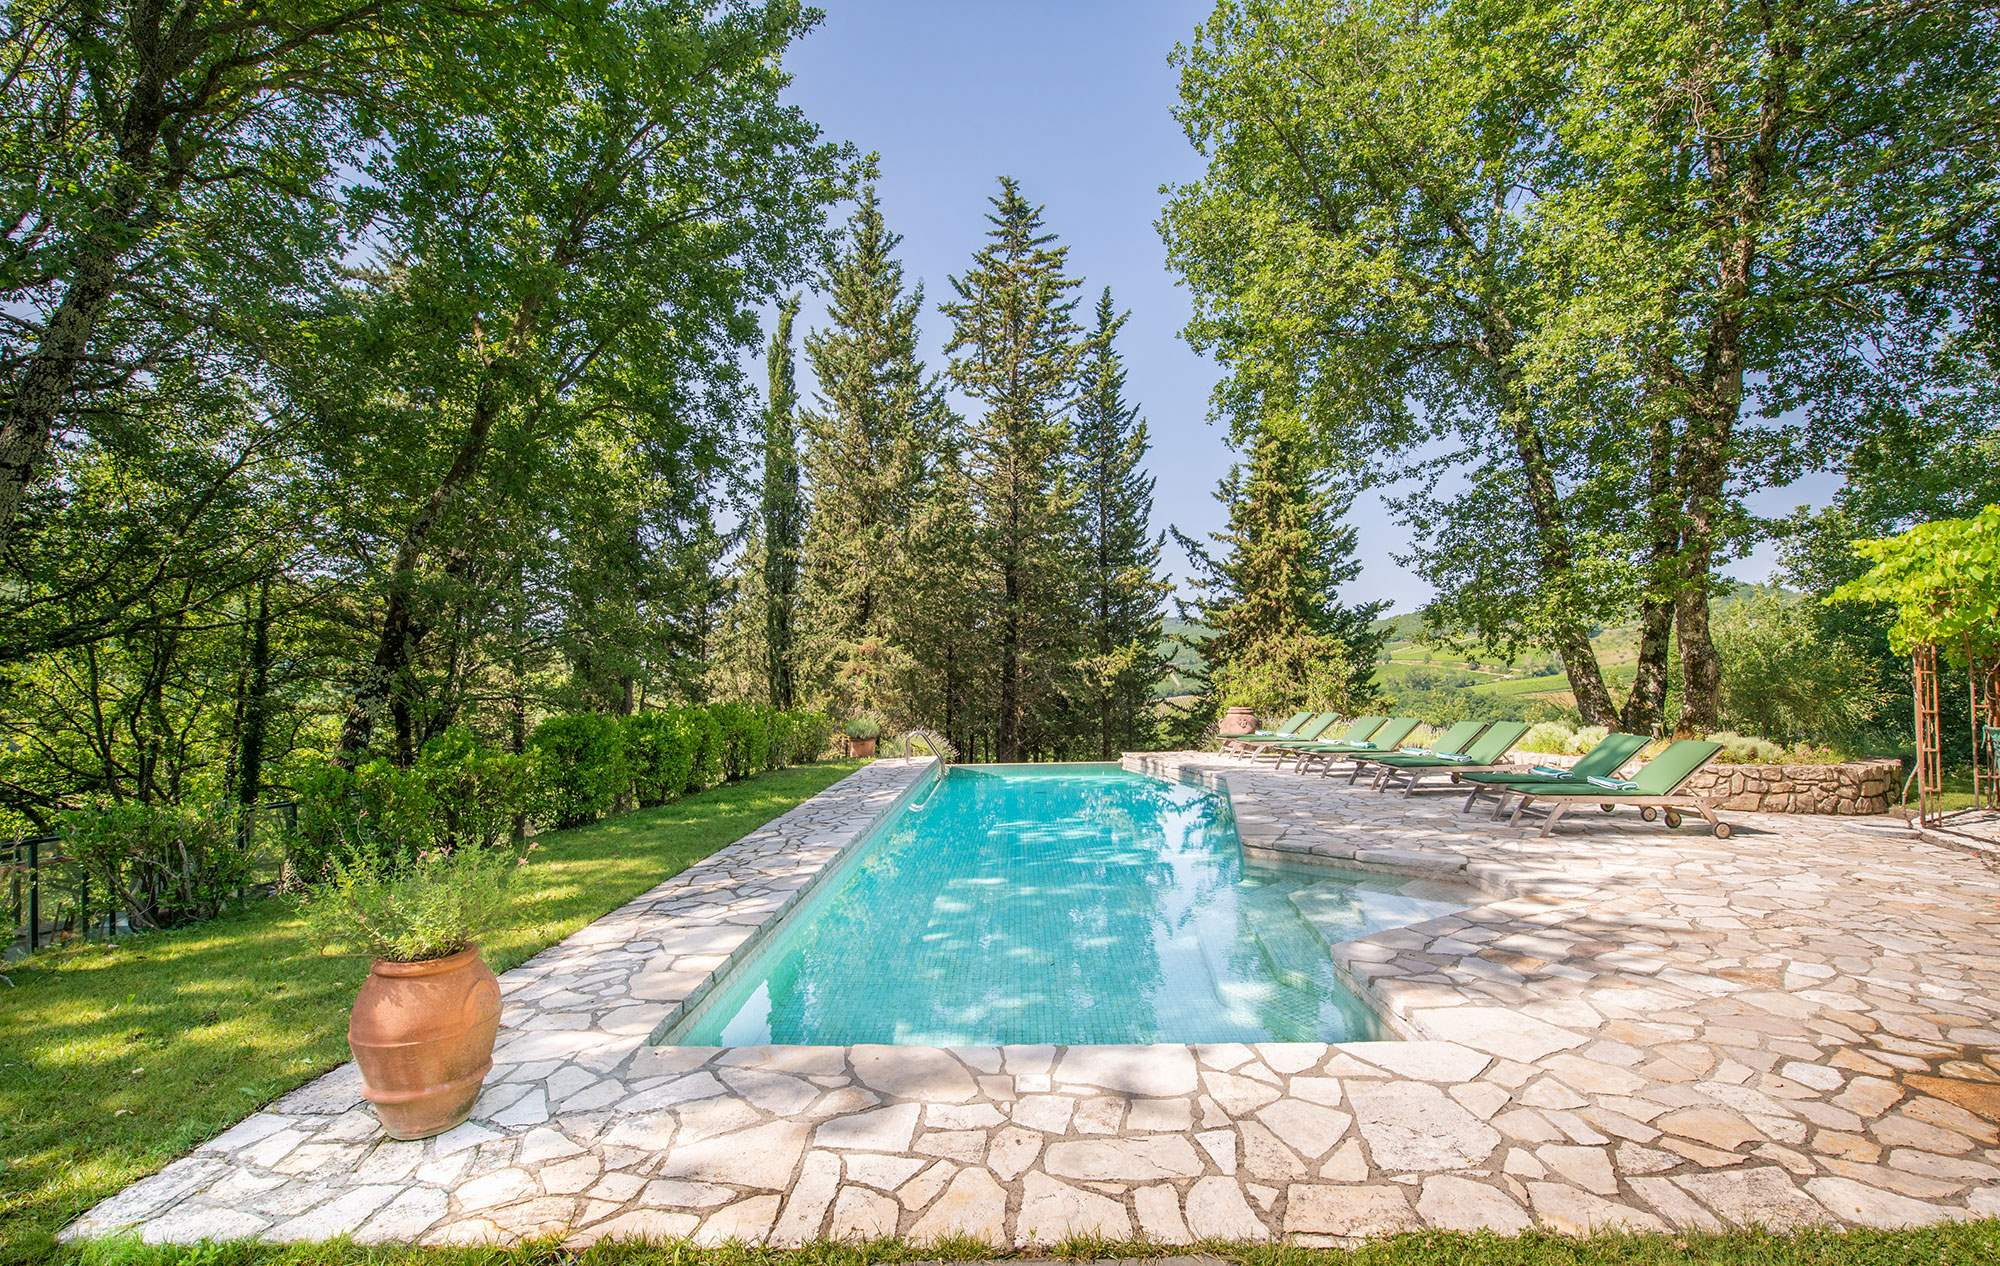 Villa Claudia, 5 Bedroom rate, 5 bedroom villa in Chianti & Countryside, Tuscany Photo #1